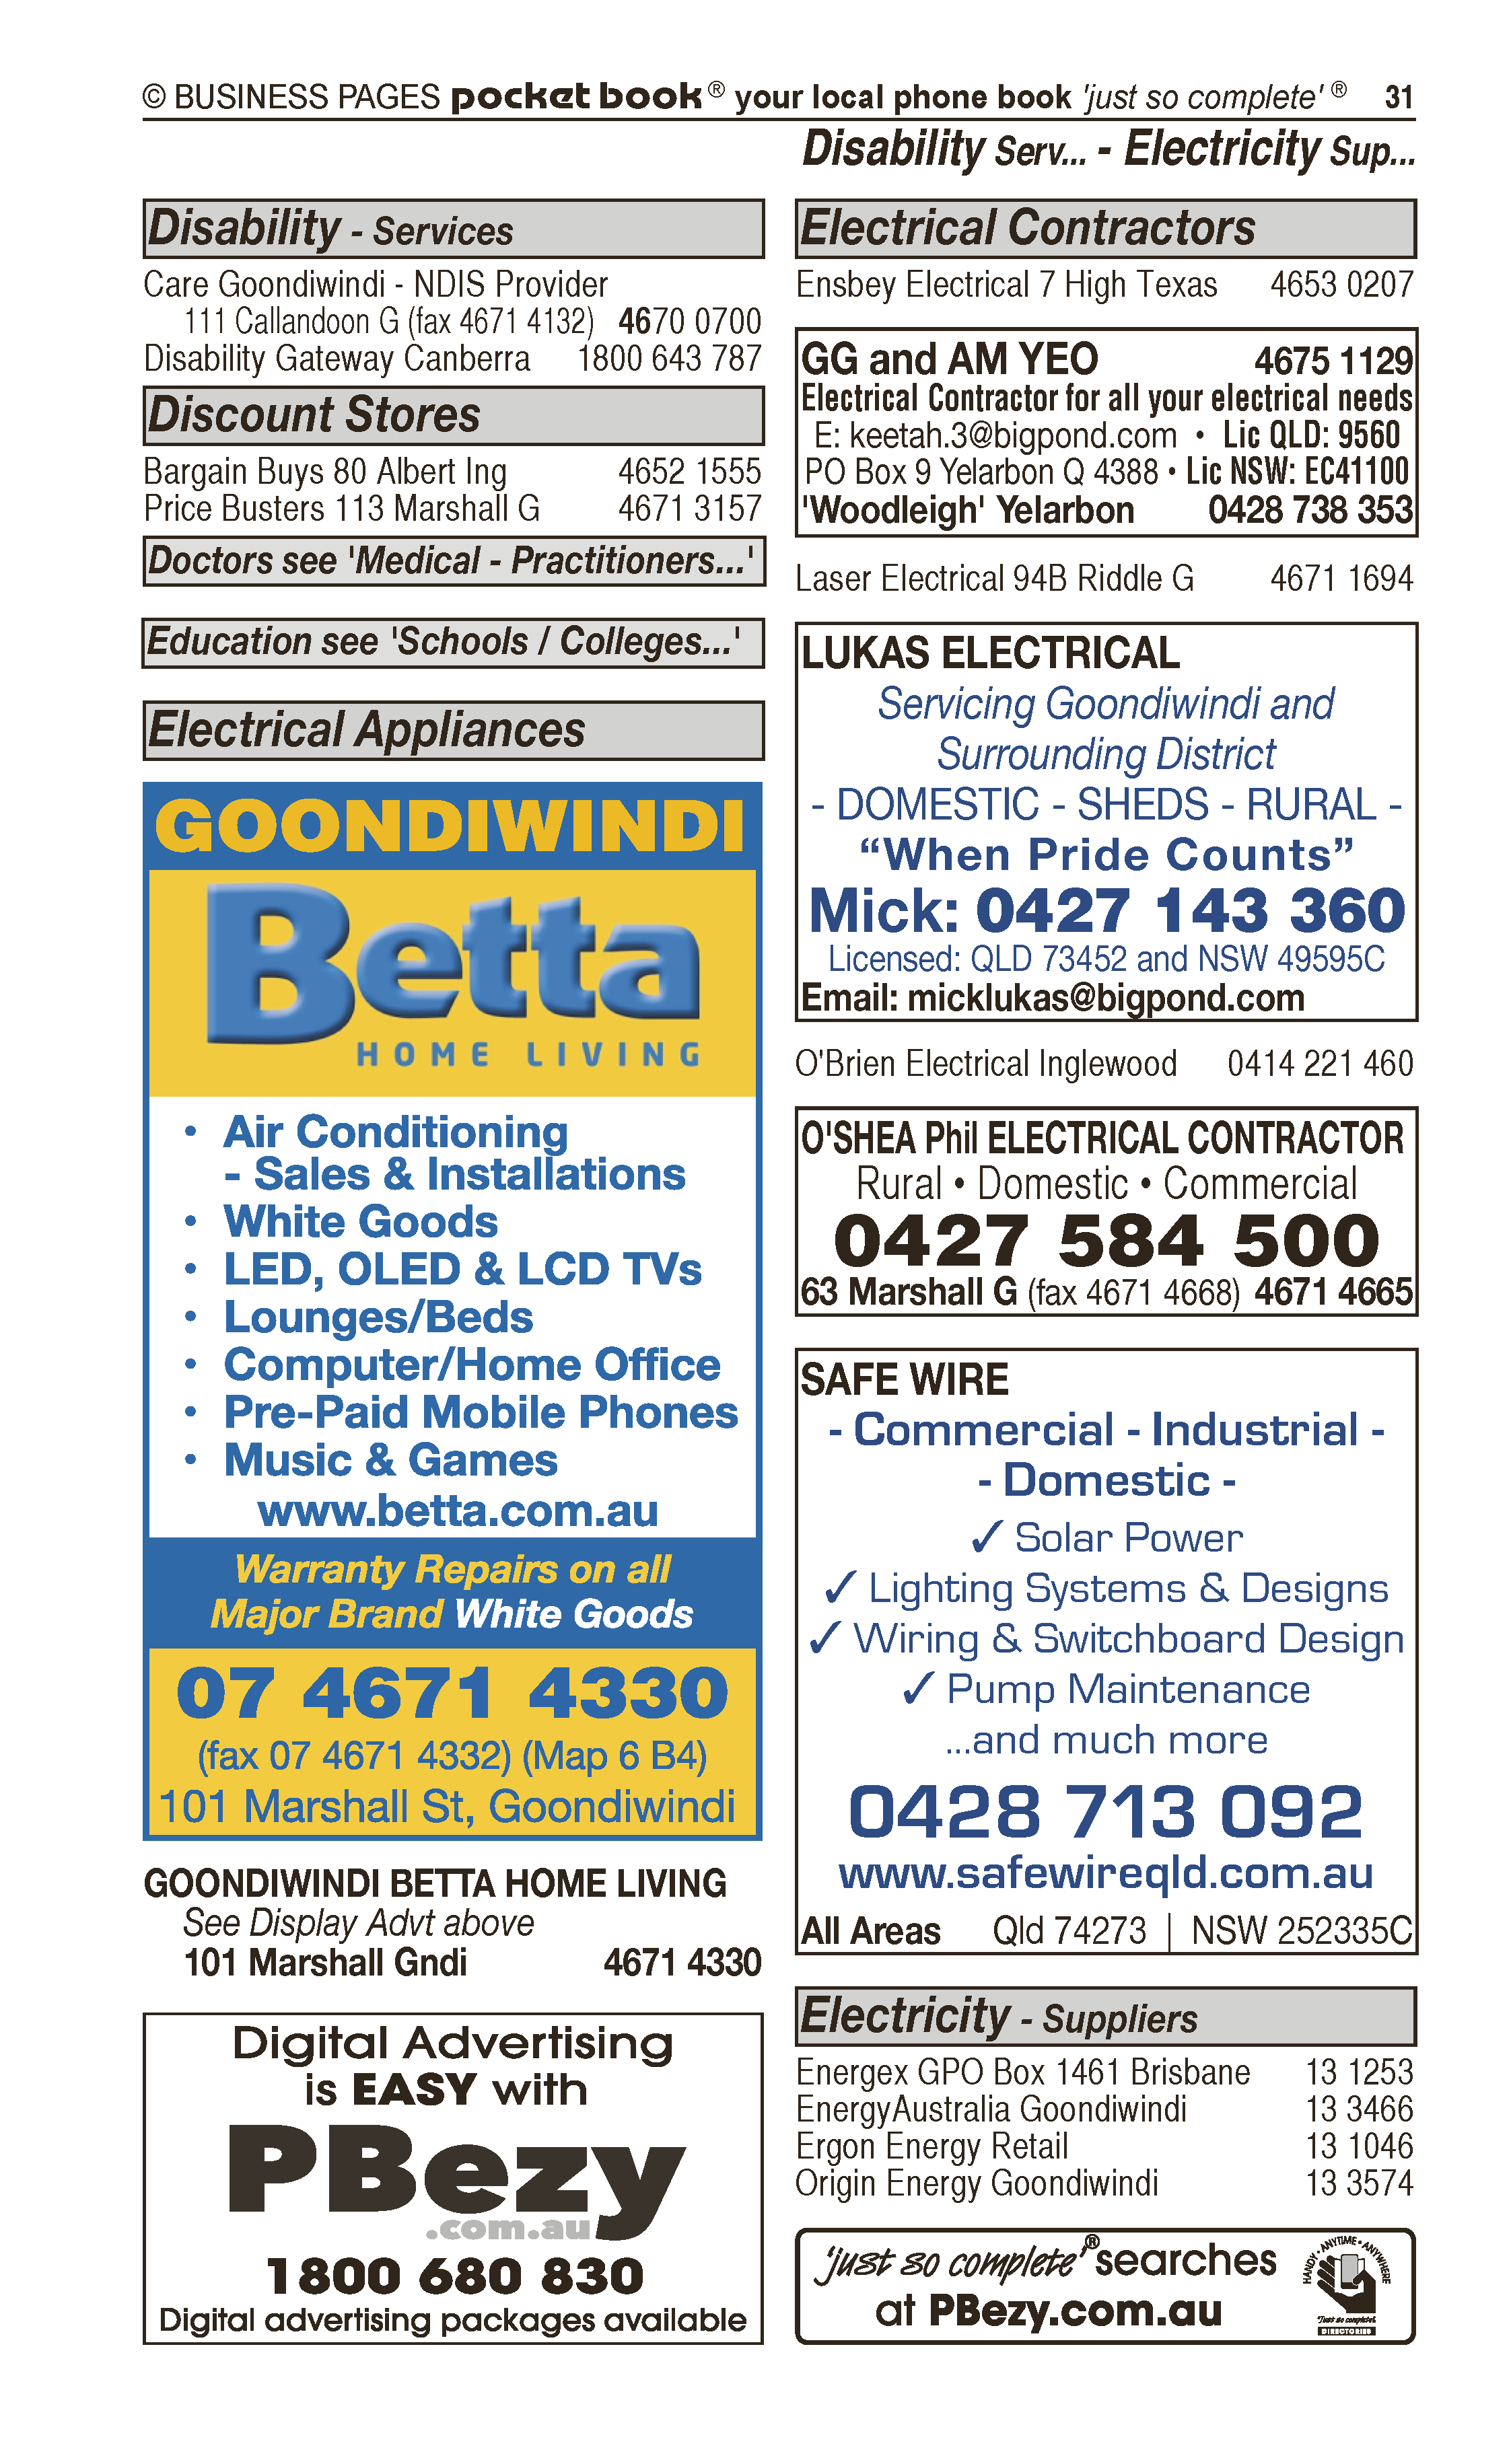 Thwaite Building Solutions Pty Ltd | Builders & Building Consultants in Goondiwindi | PBezy Pocket Books local directories - page 31